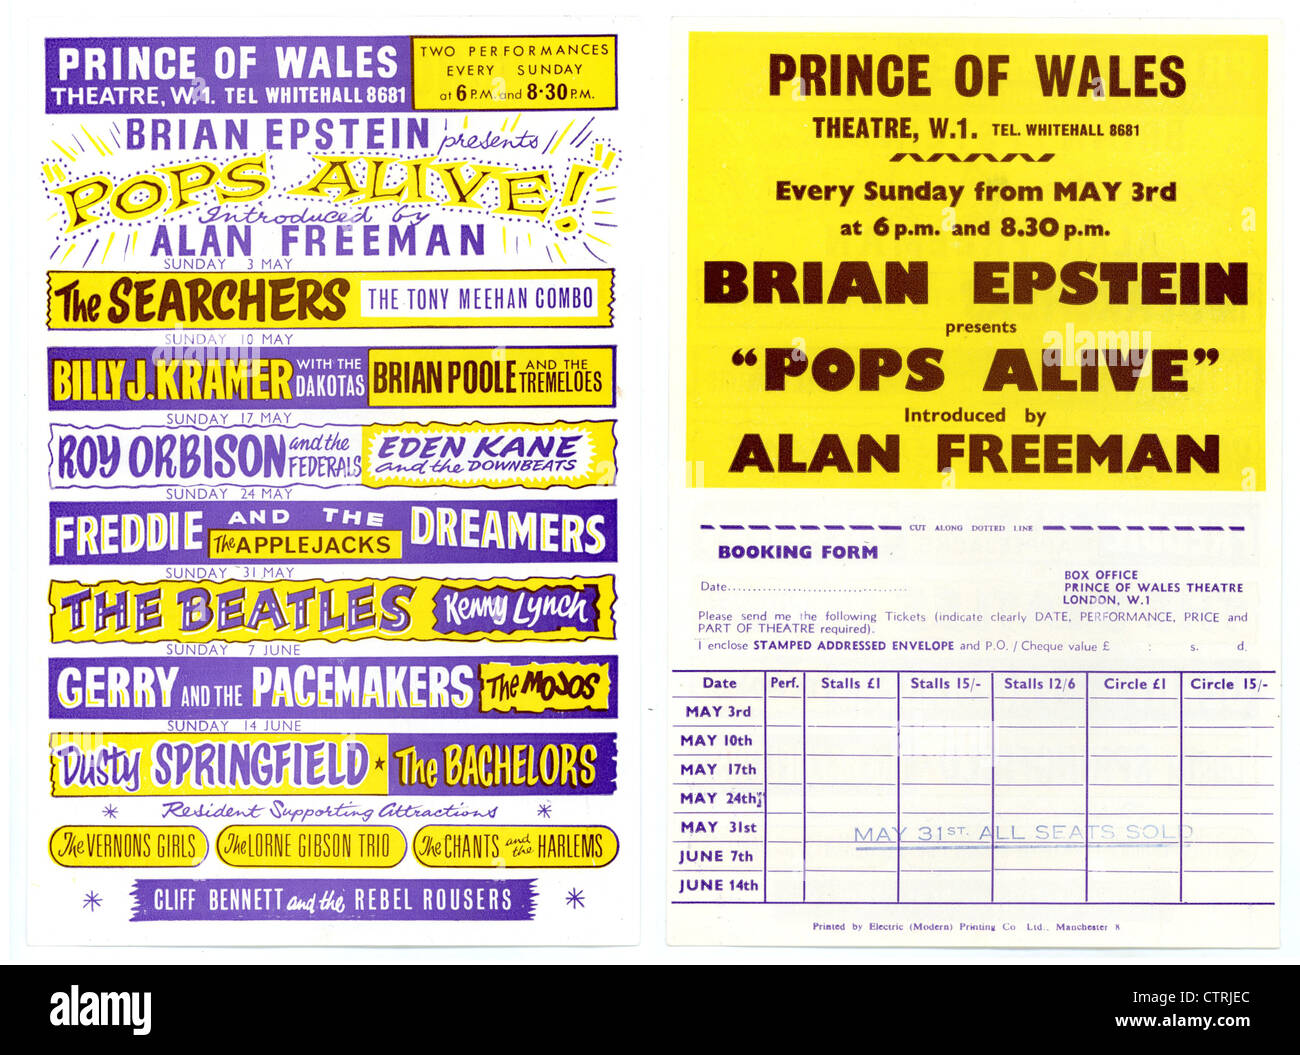 001011 - The Beatles Pops Alive Handbill from the Prince Of Wales Theatre, London on 31st May 1964 - Stock Image